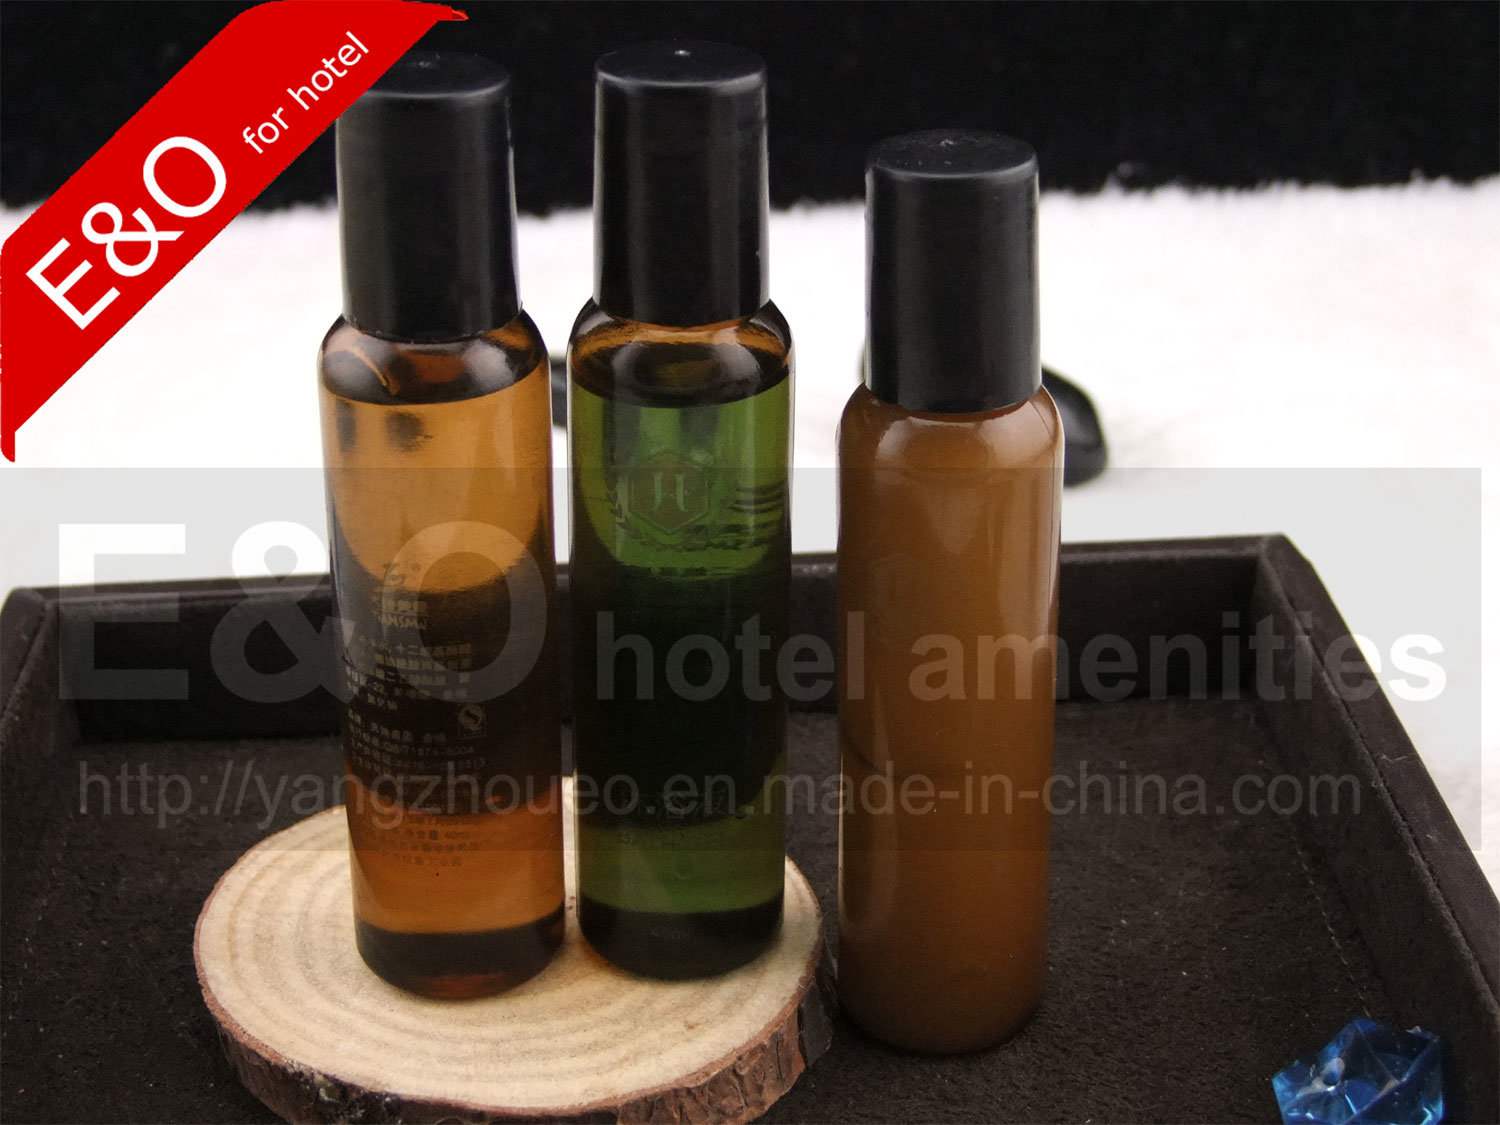 Hotel Disposable Shampoo and Soaps, Hotel Bathroom Accessories, Hotel Amenities Eo-B162